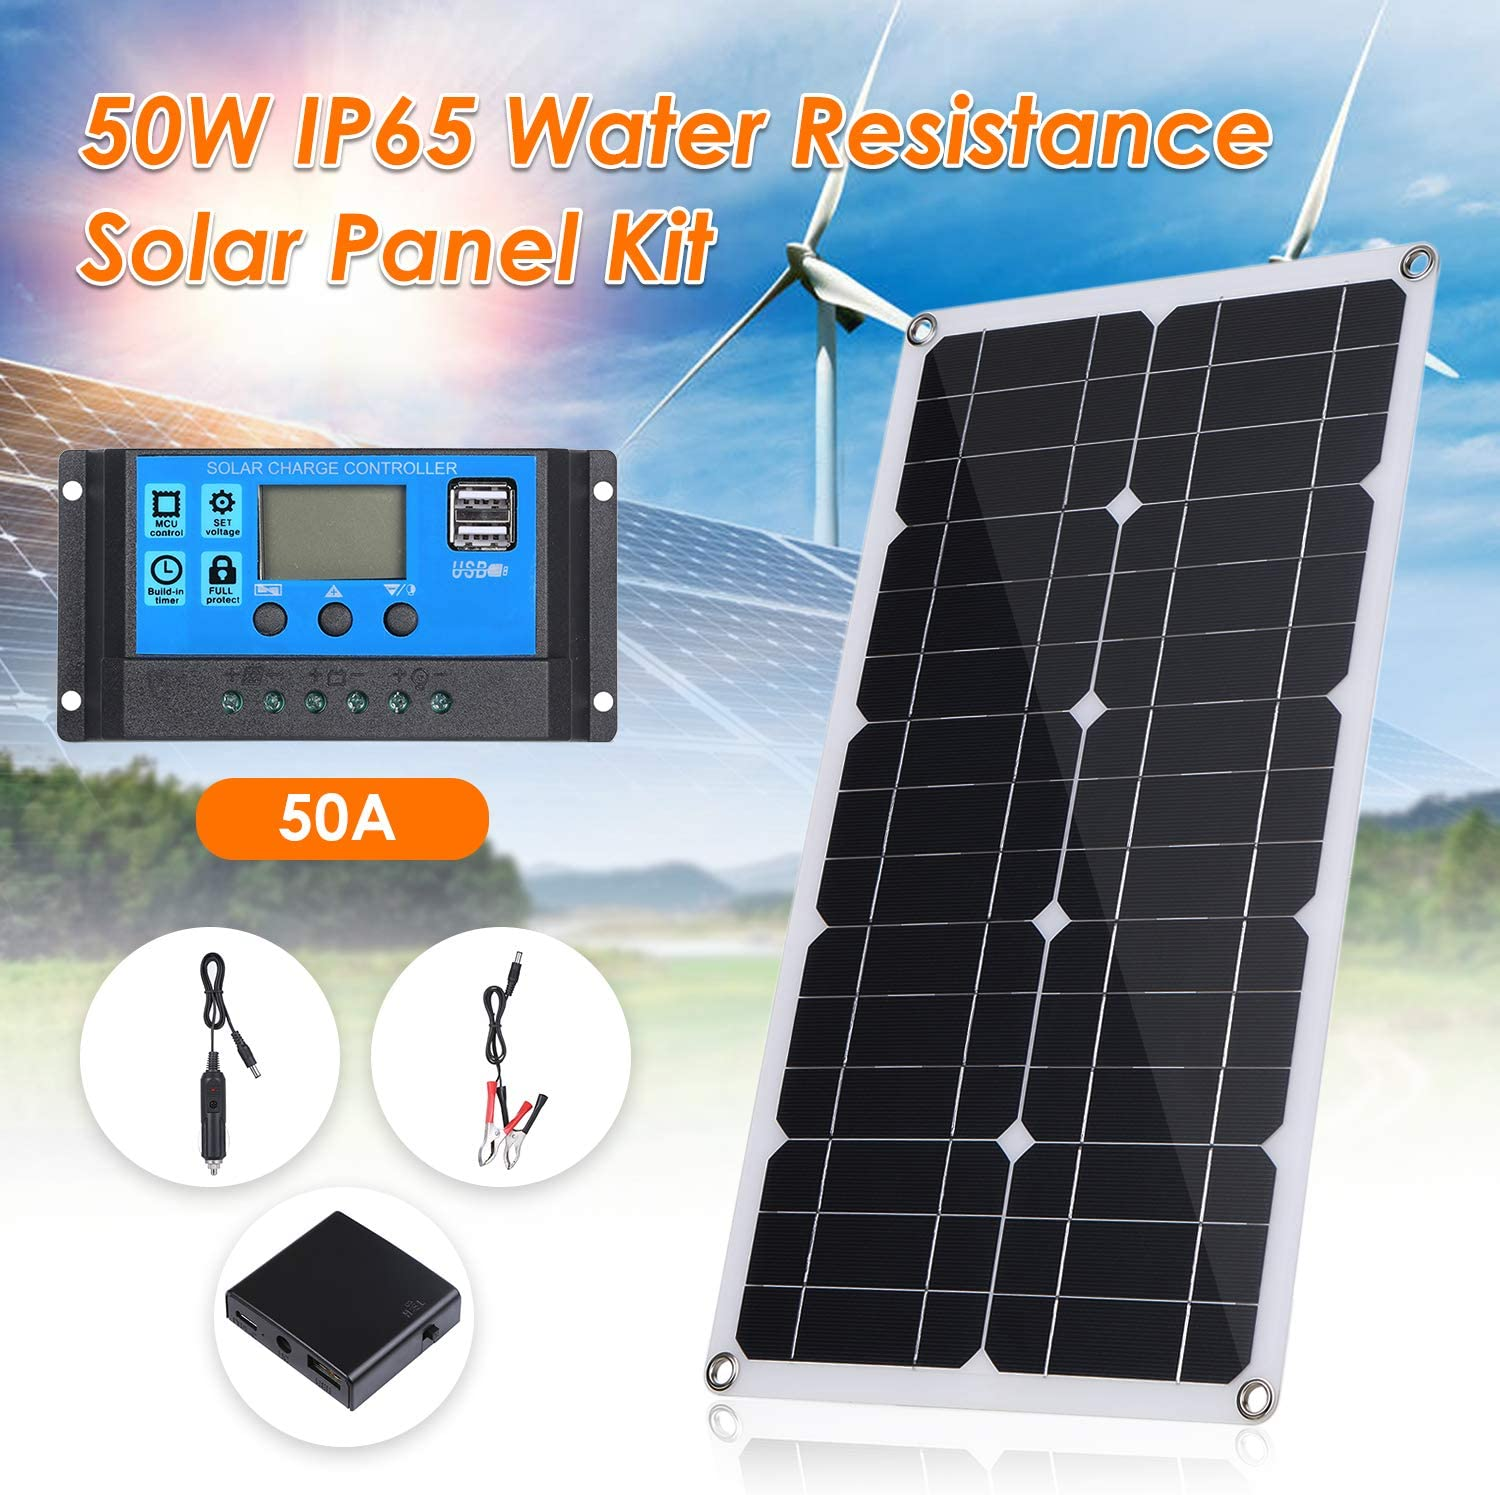 Vislone Solar Panel Car Battery Charger Flexible Portable Solar Battery Maintainer with Cigarette Lighter Plug and Alligator Clip for for Home Car Boat Indoor Outdoor Use